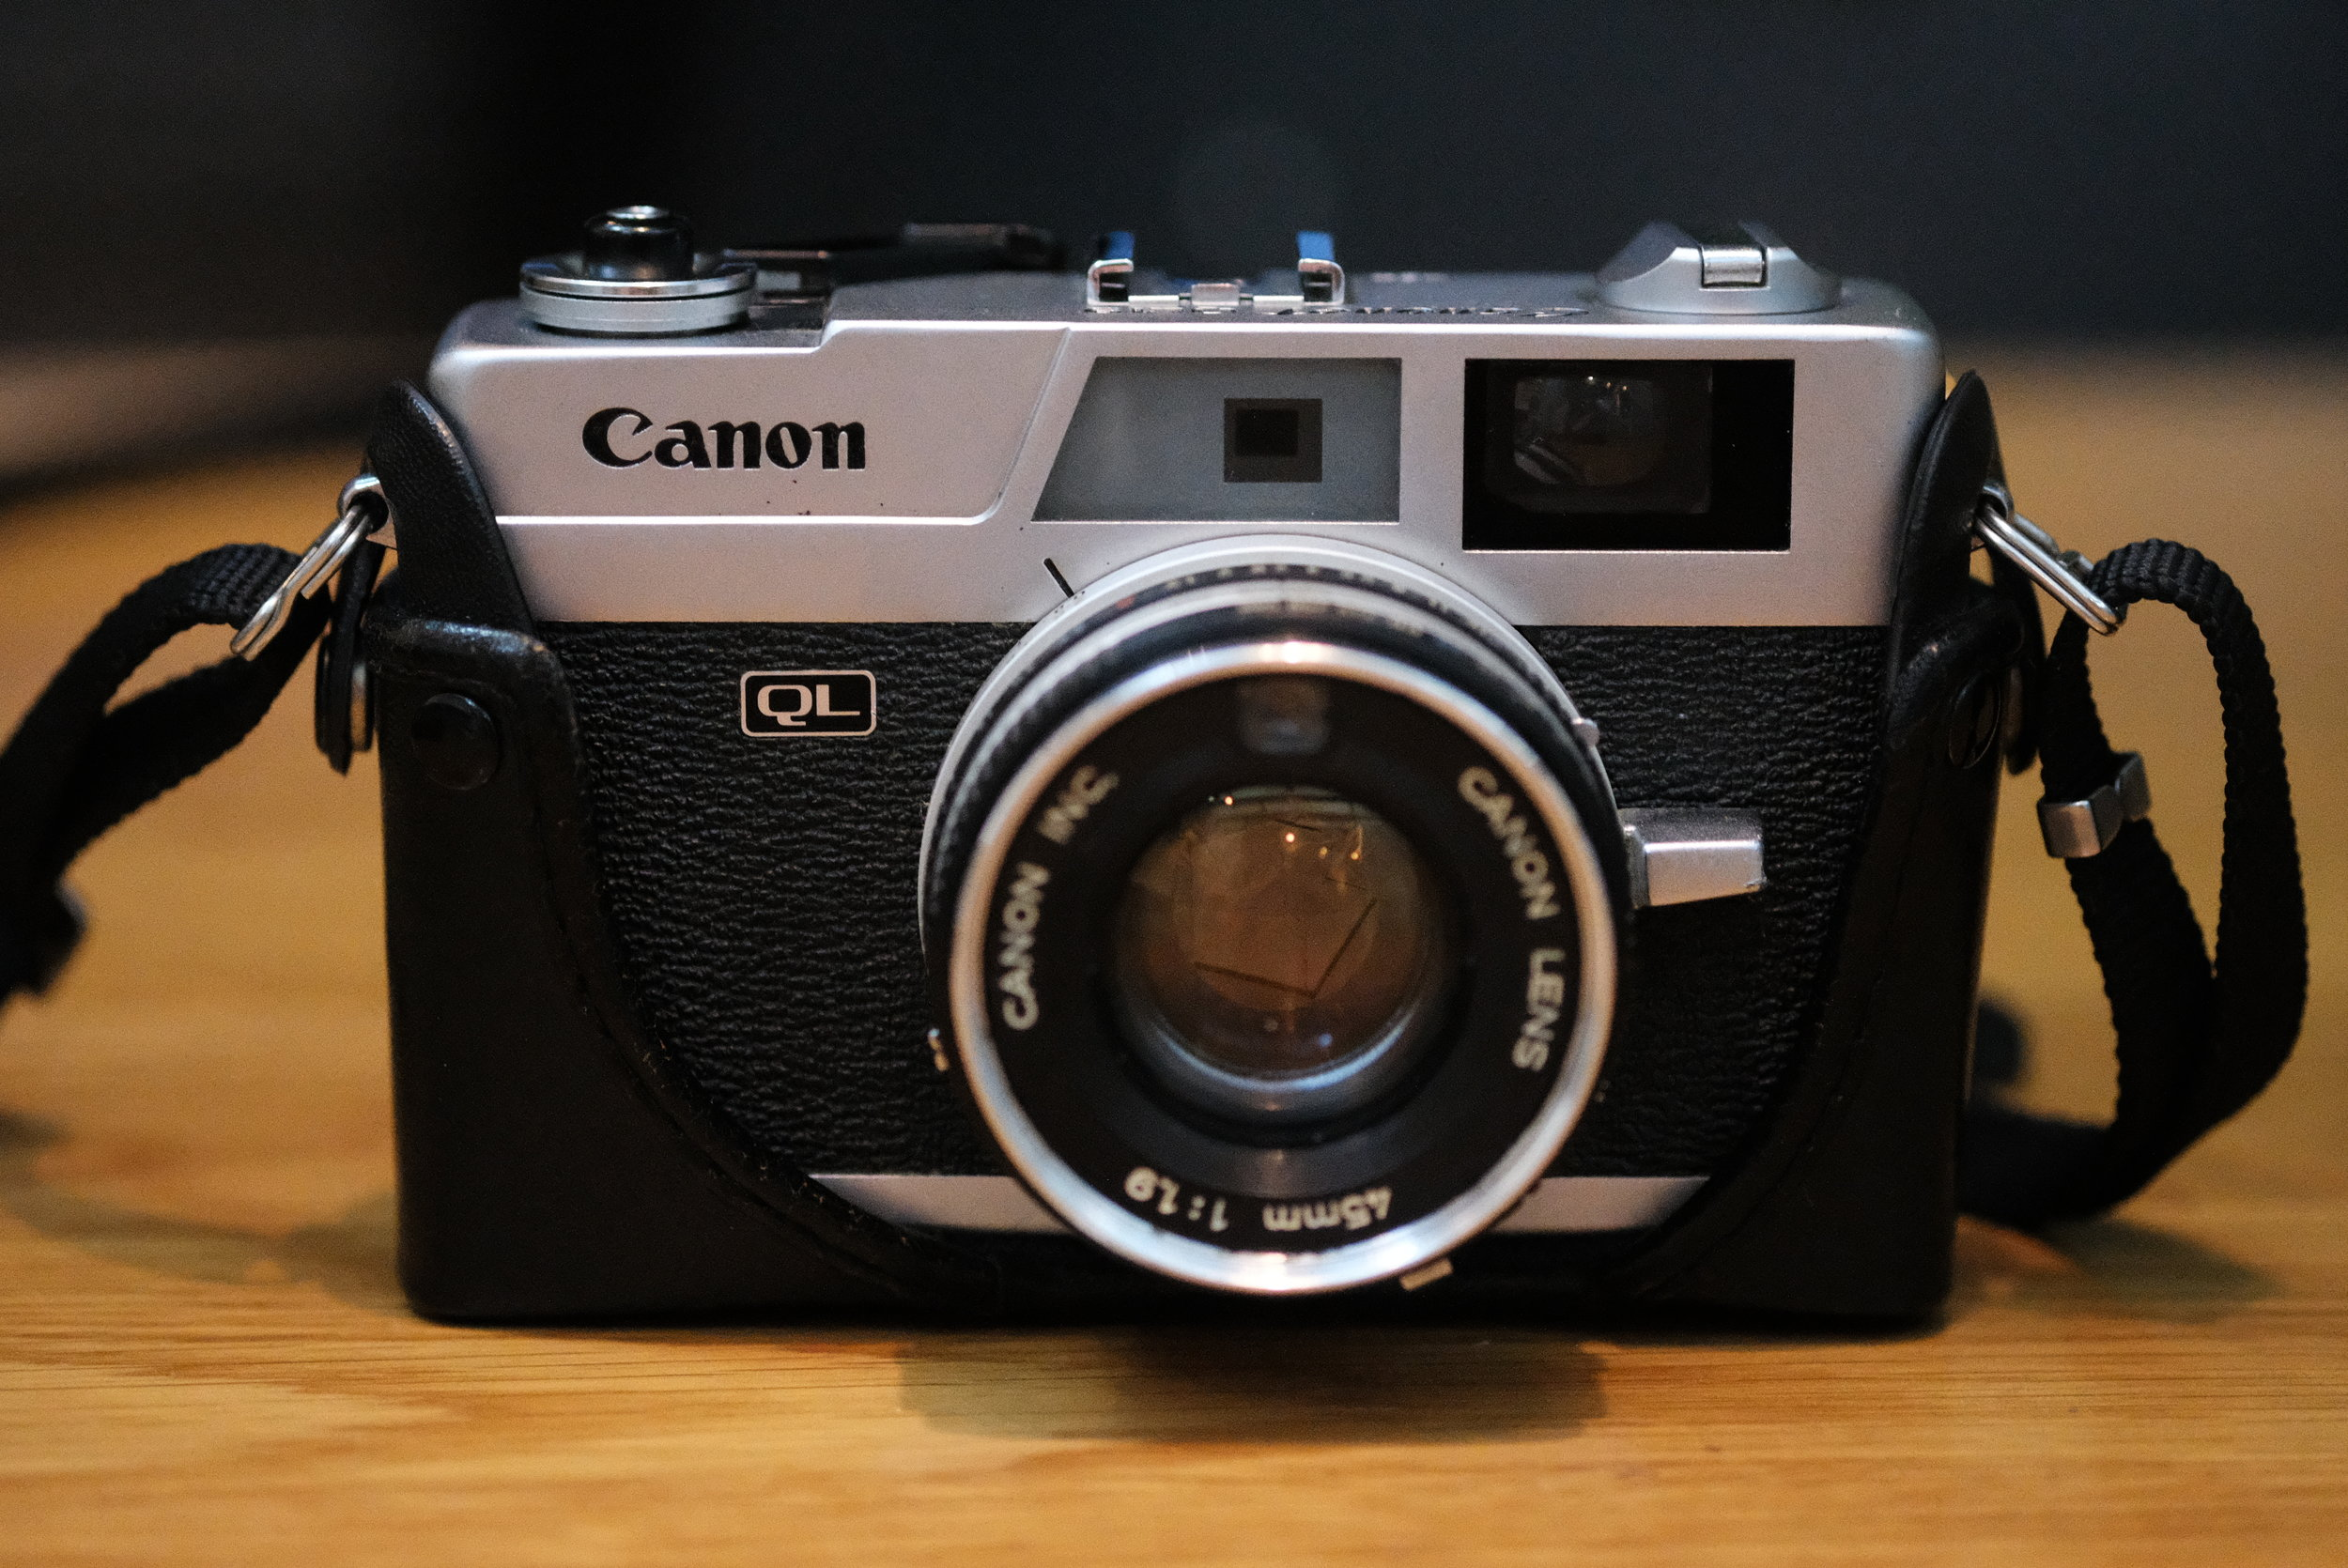 Canon QL19, taken by the Fuji X-Pro2 with the 60mm f/2.4 macro